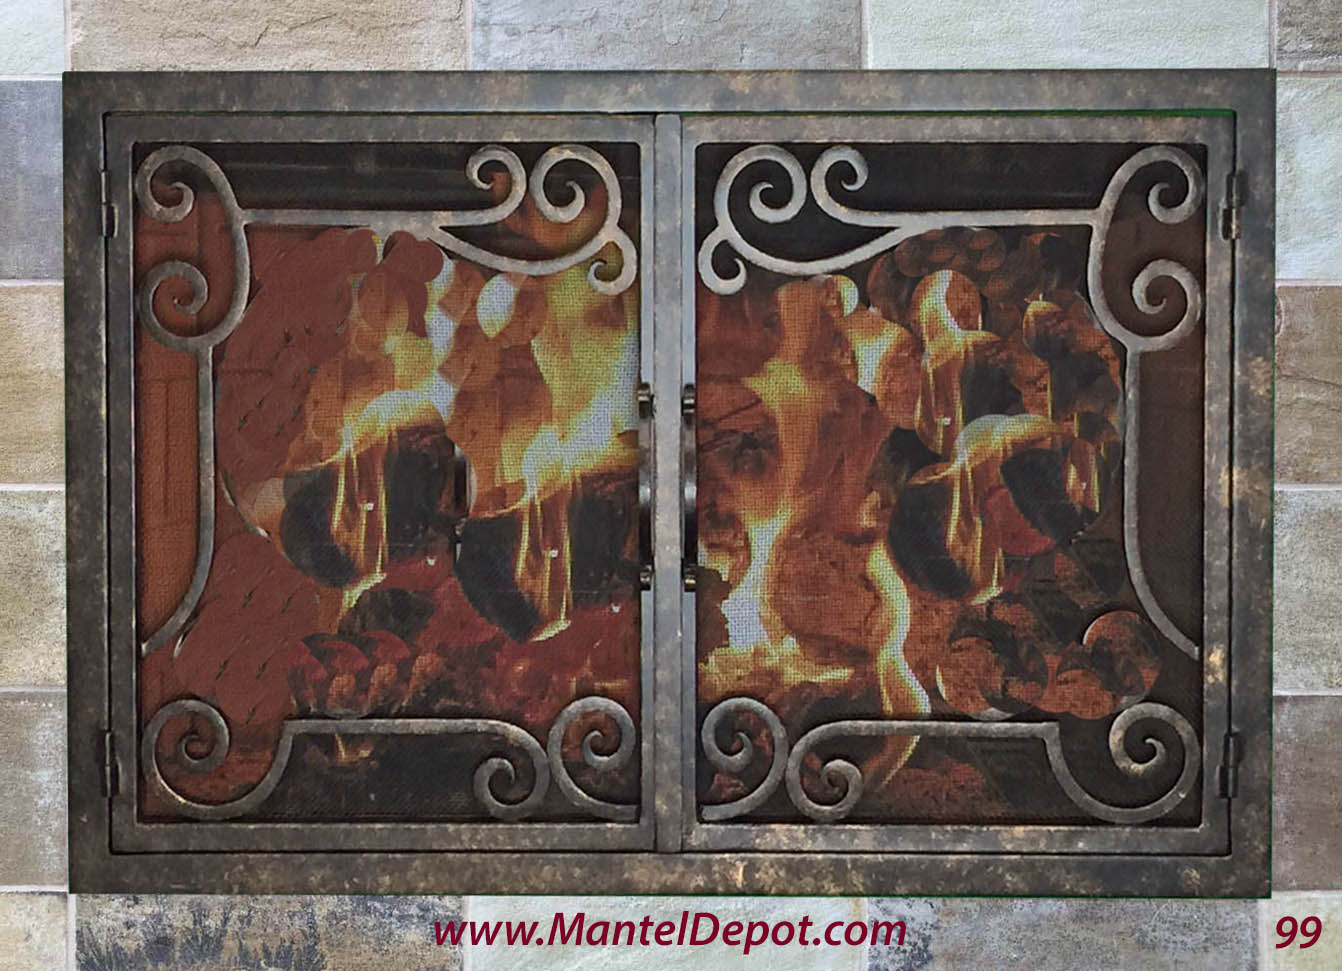 Hand Forged Iron Fireplace Doors Fd099 From Mantel Depot In San Diego